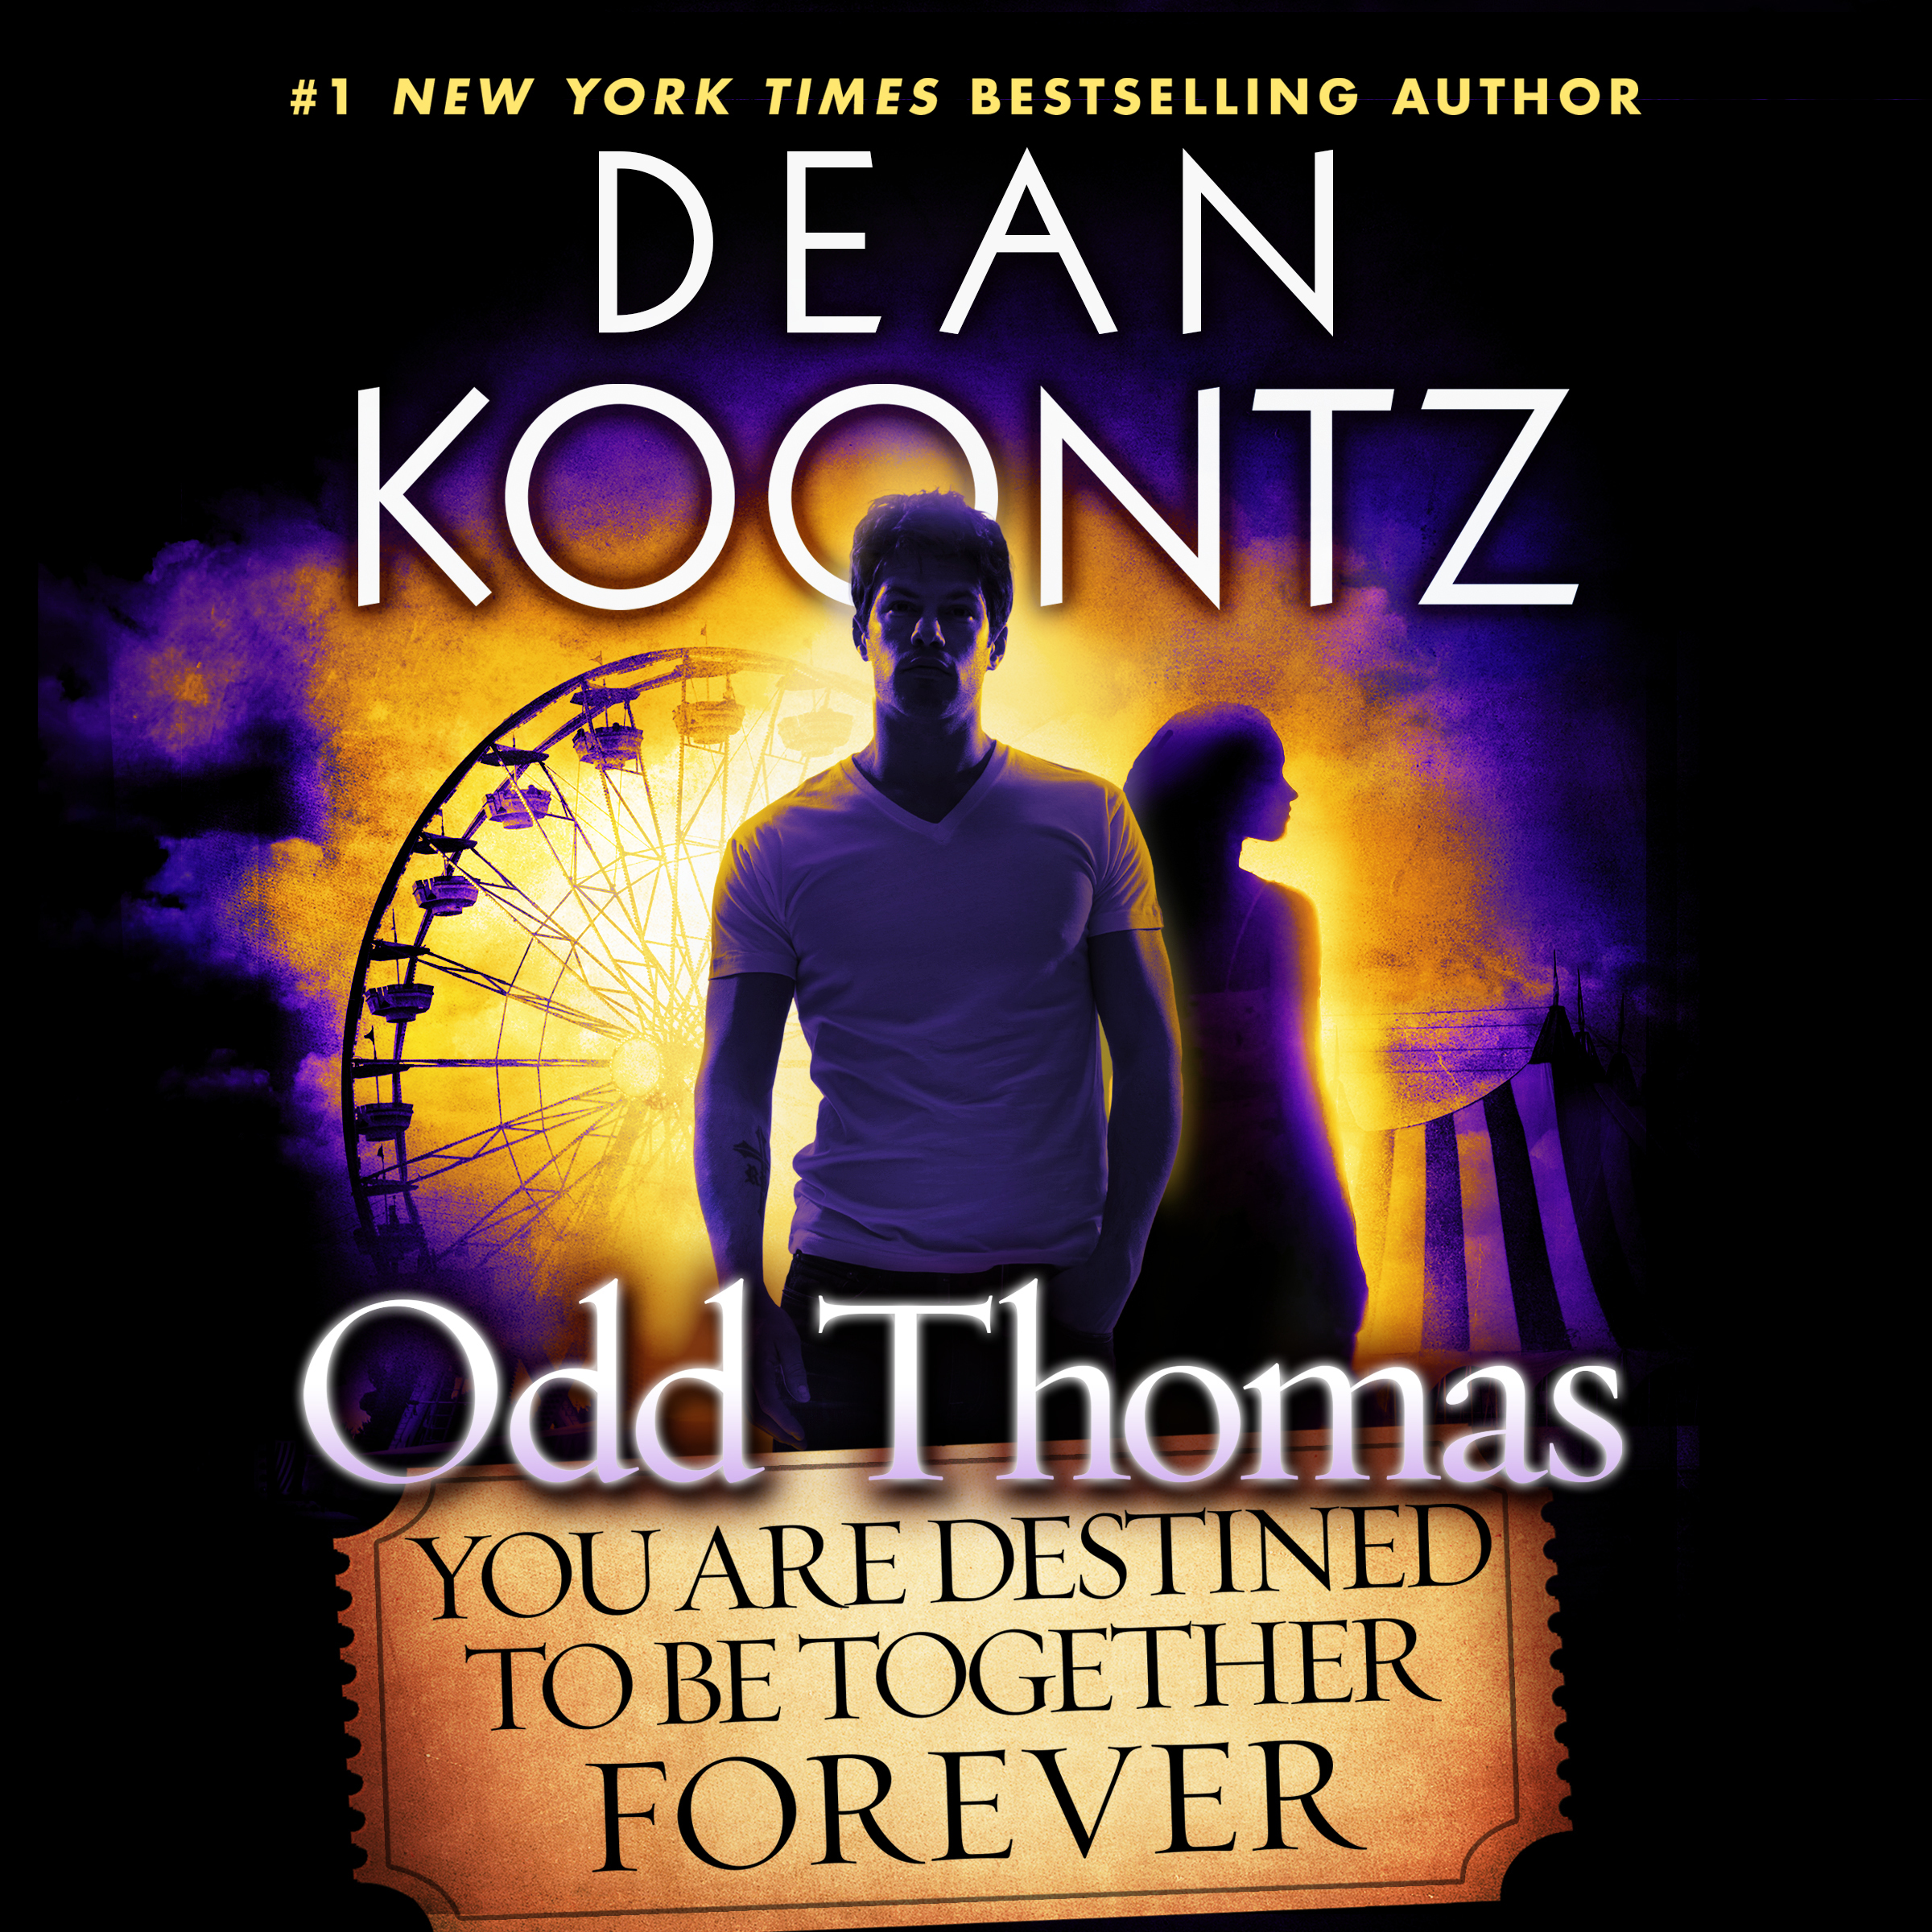 Printable Odd Thomas: You Are Destined to Be Together Forever Audiobook Cover Art